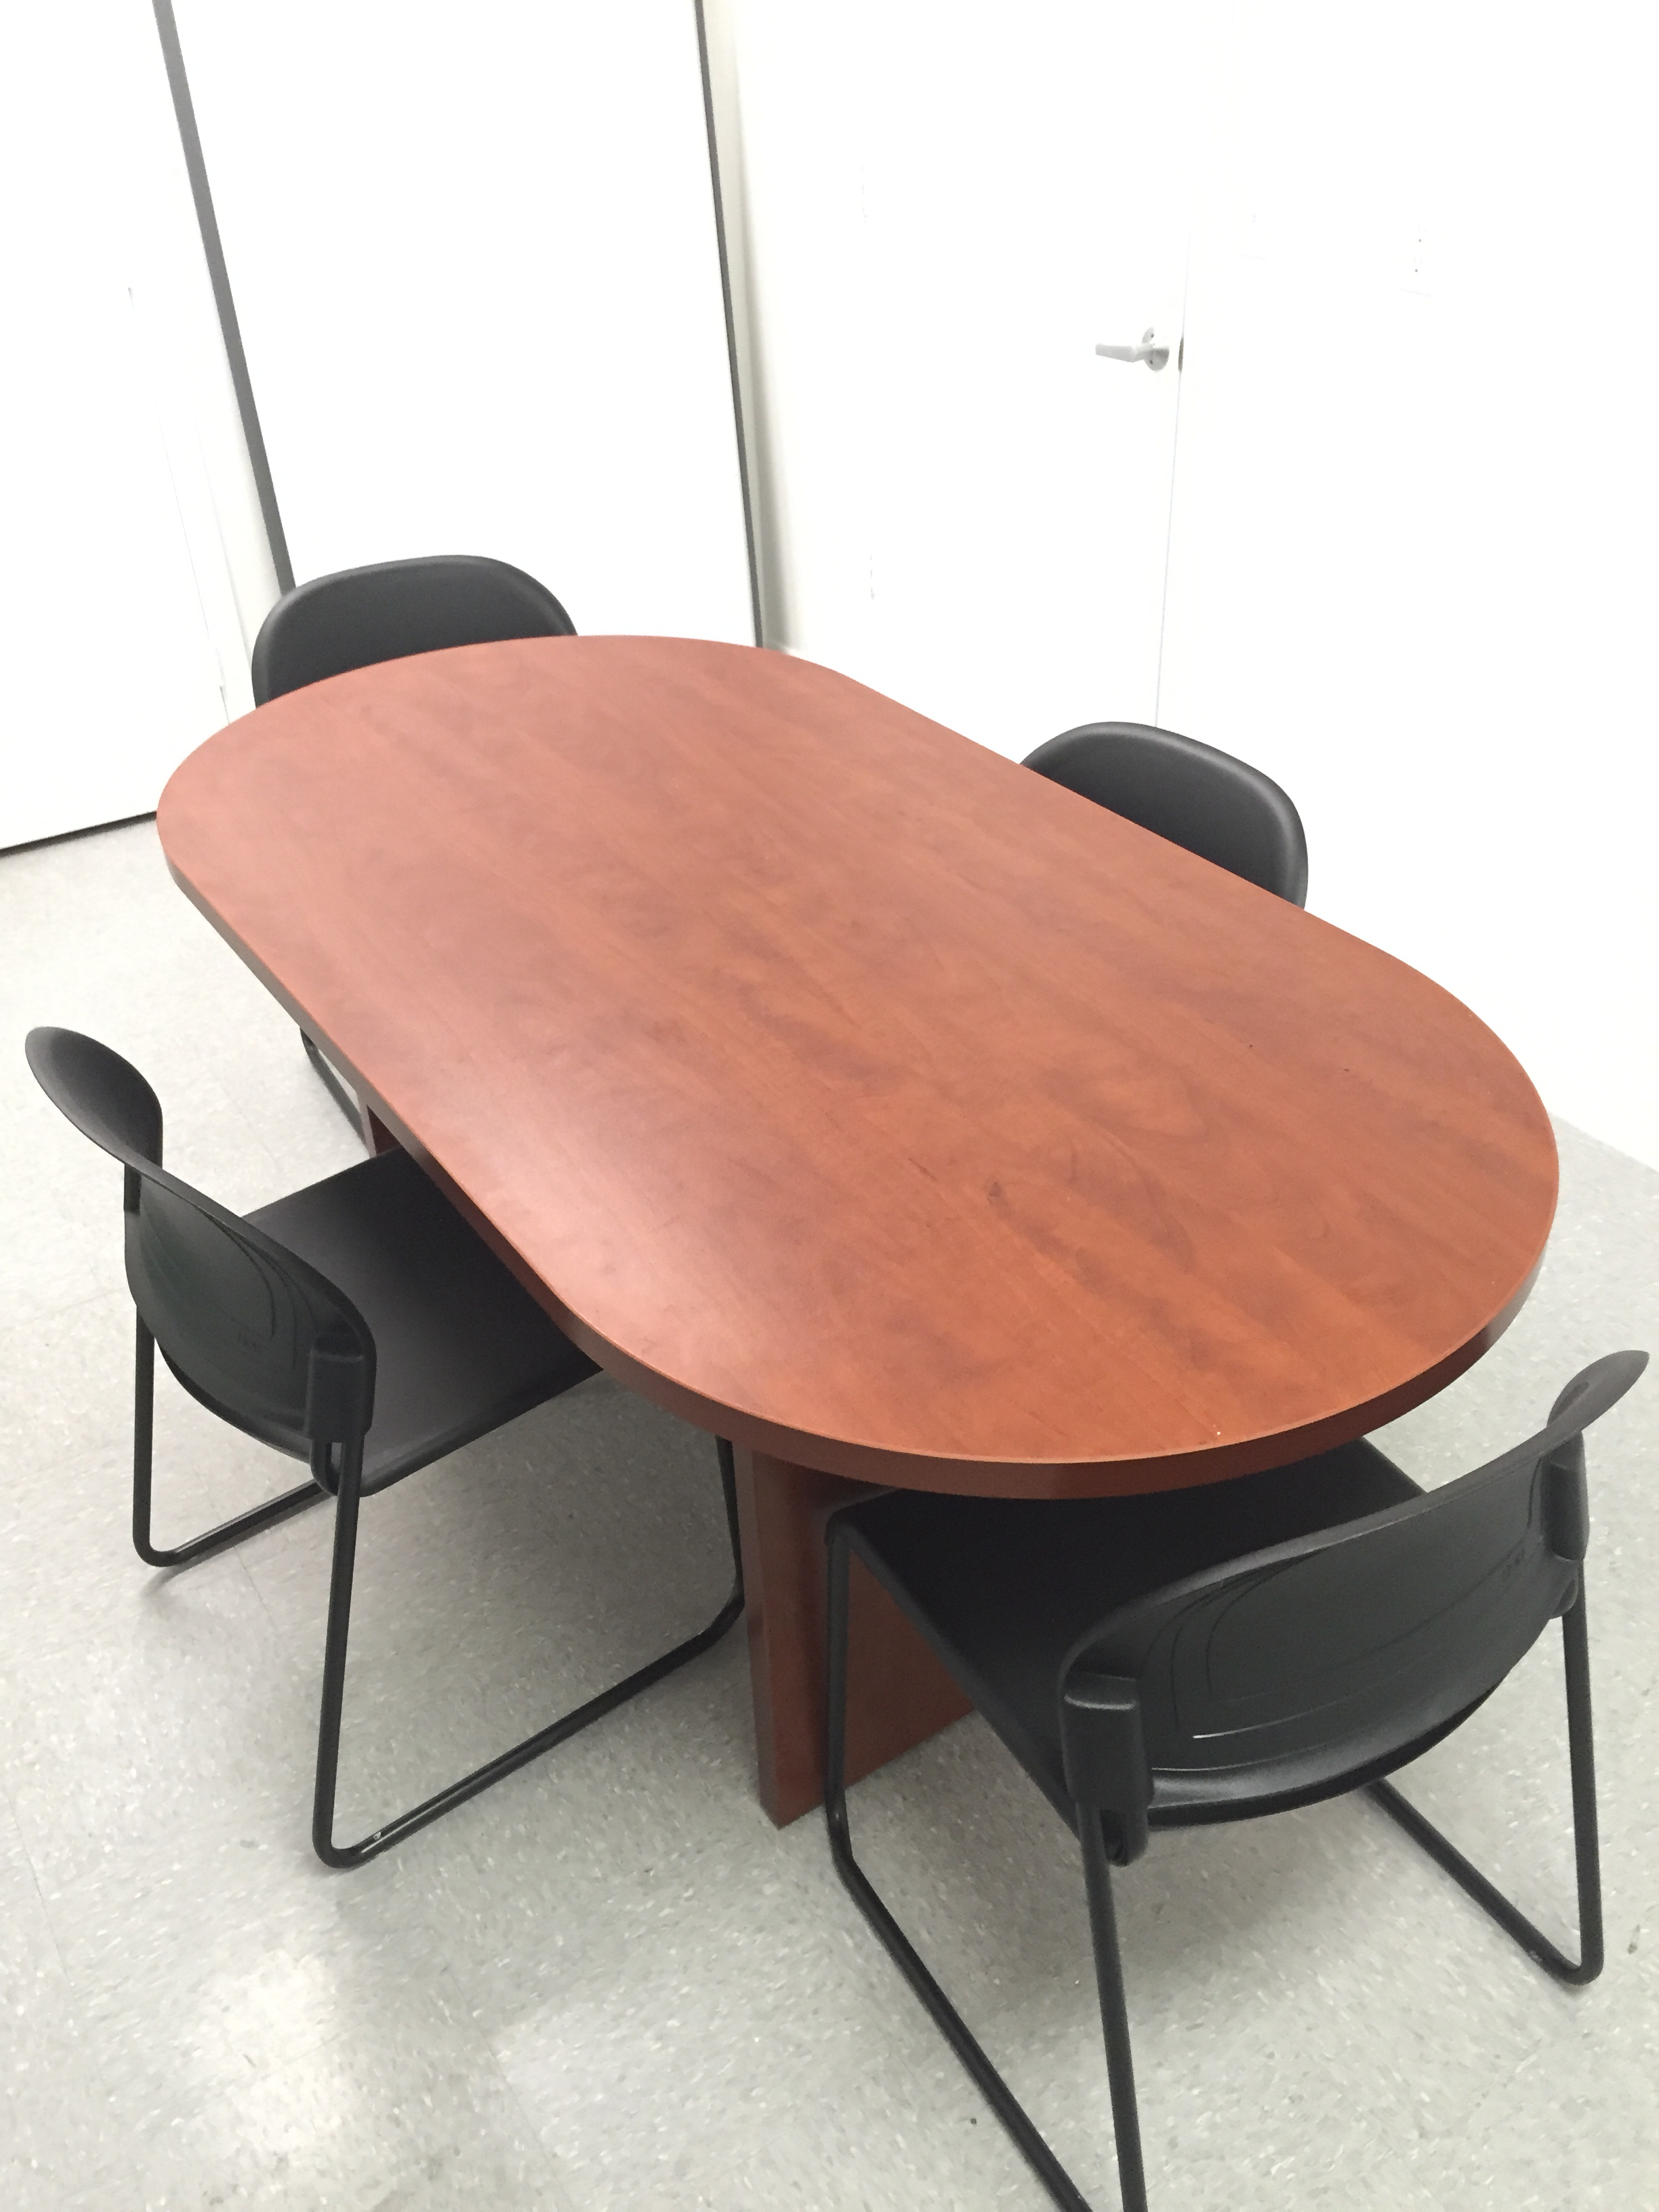 business-furniture-supplier-in-palm-beach-florida-3-.png